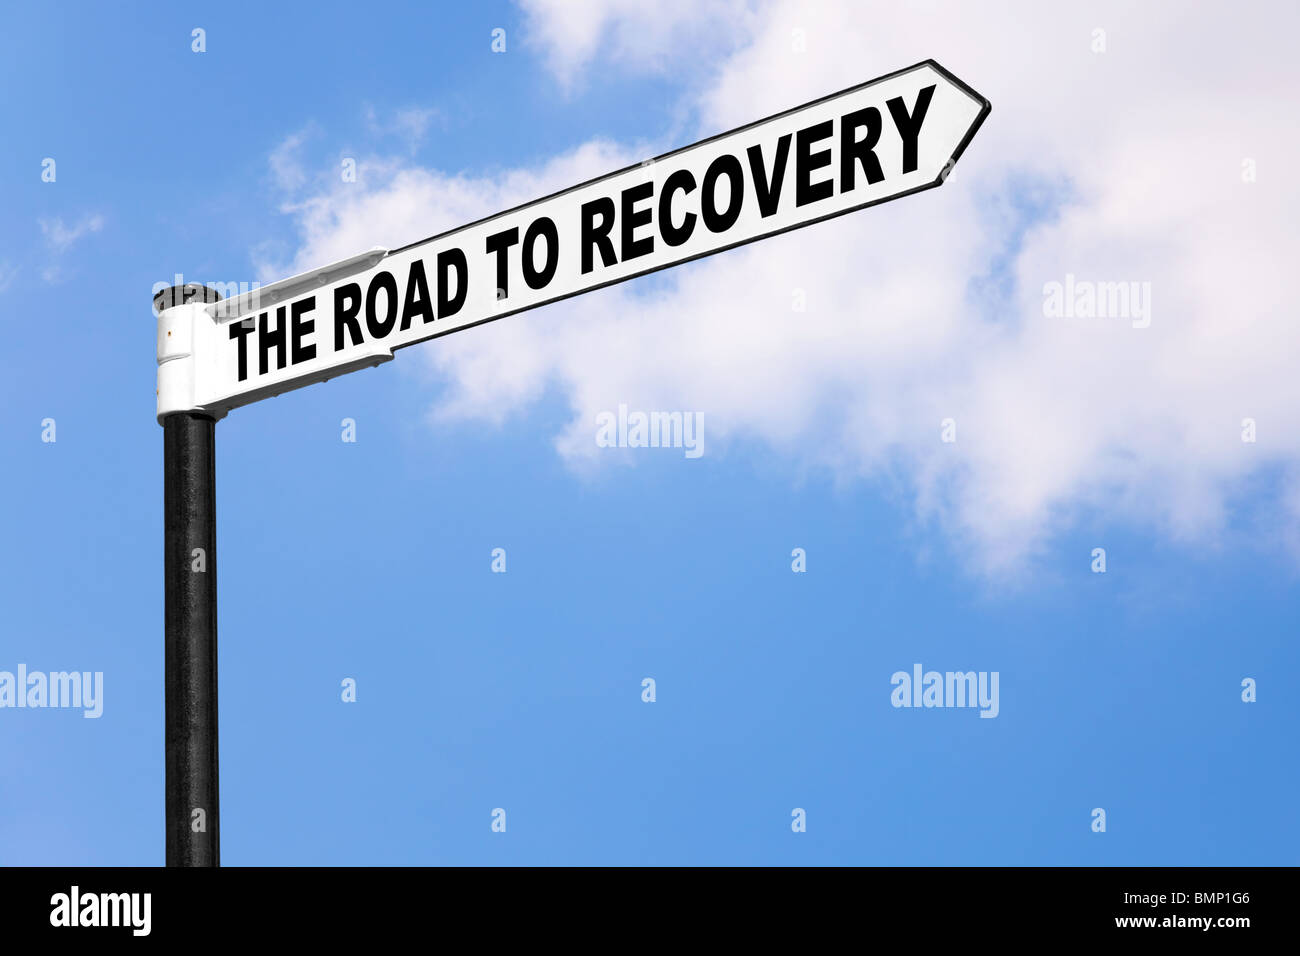 Concept signpost image for the saying The road to recovery. Good image for healthcare or financial related themes. - Stock Image